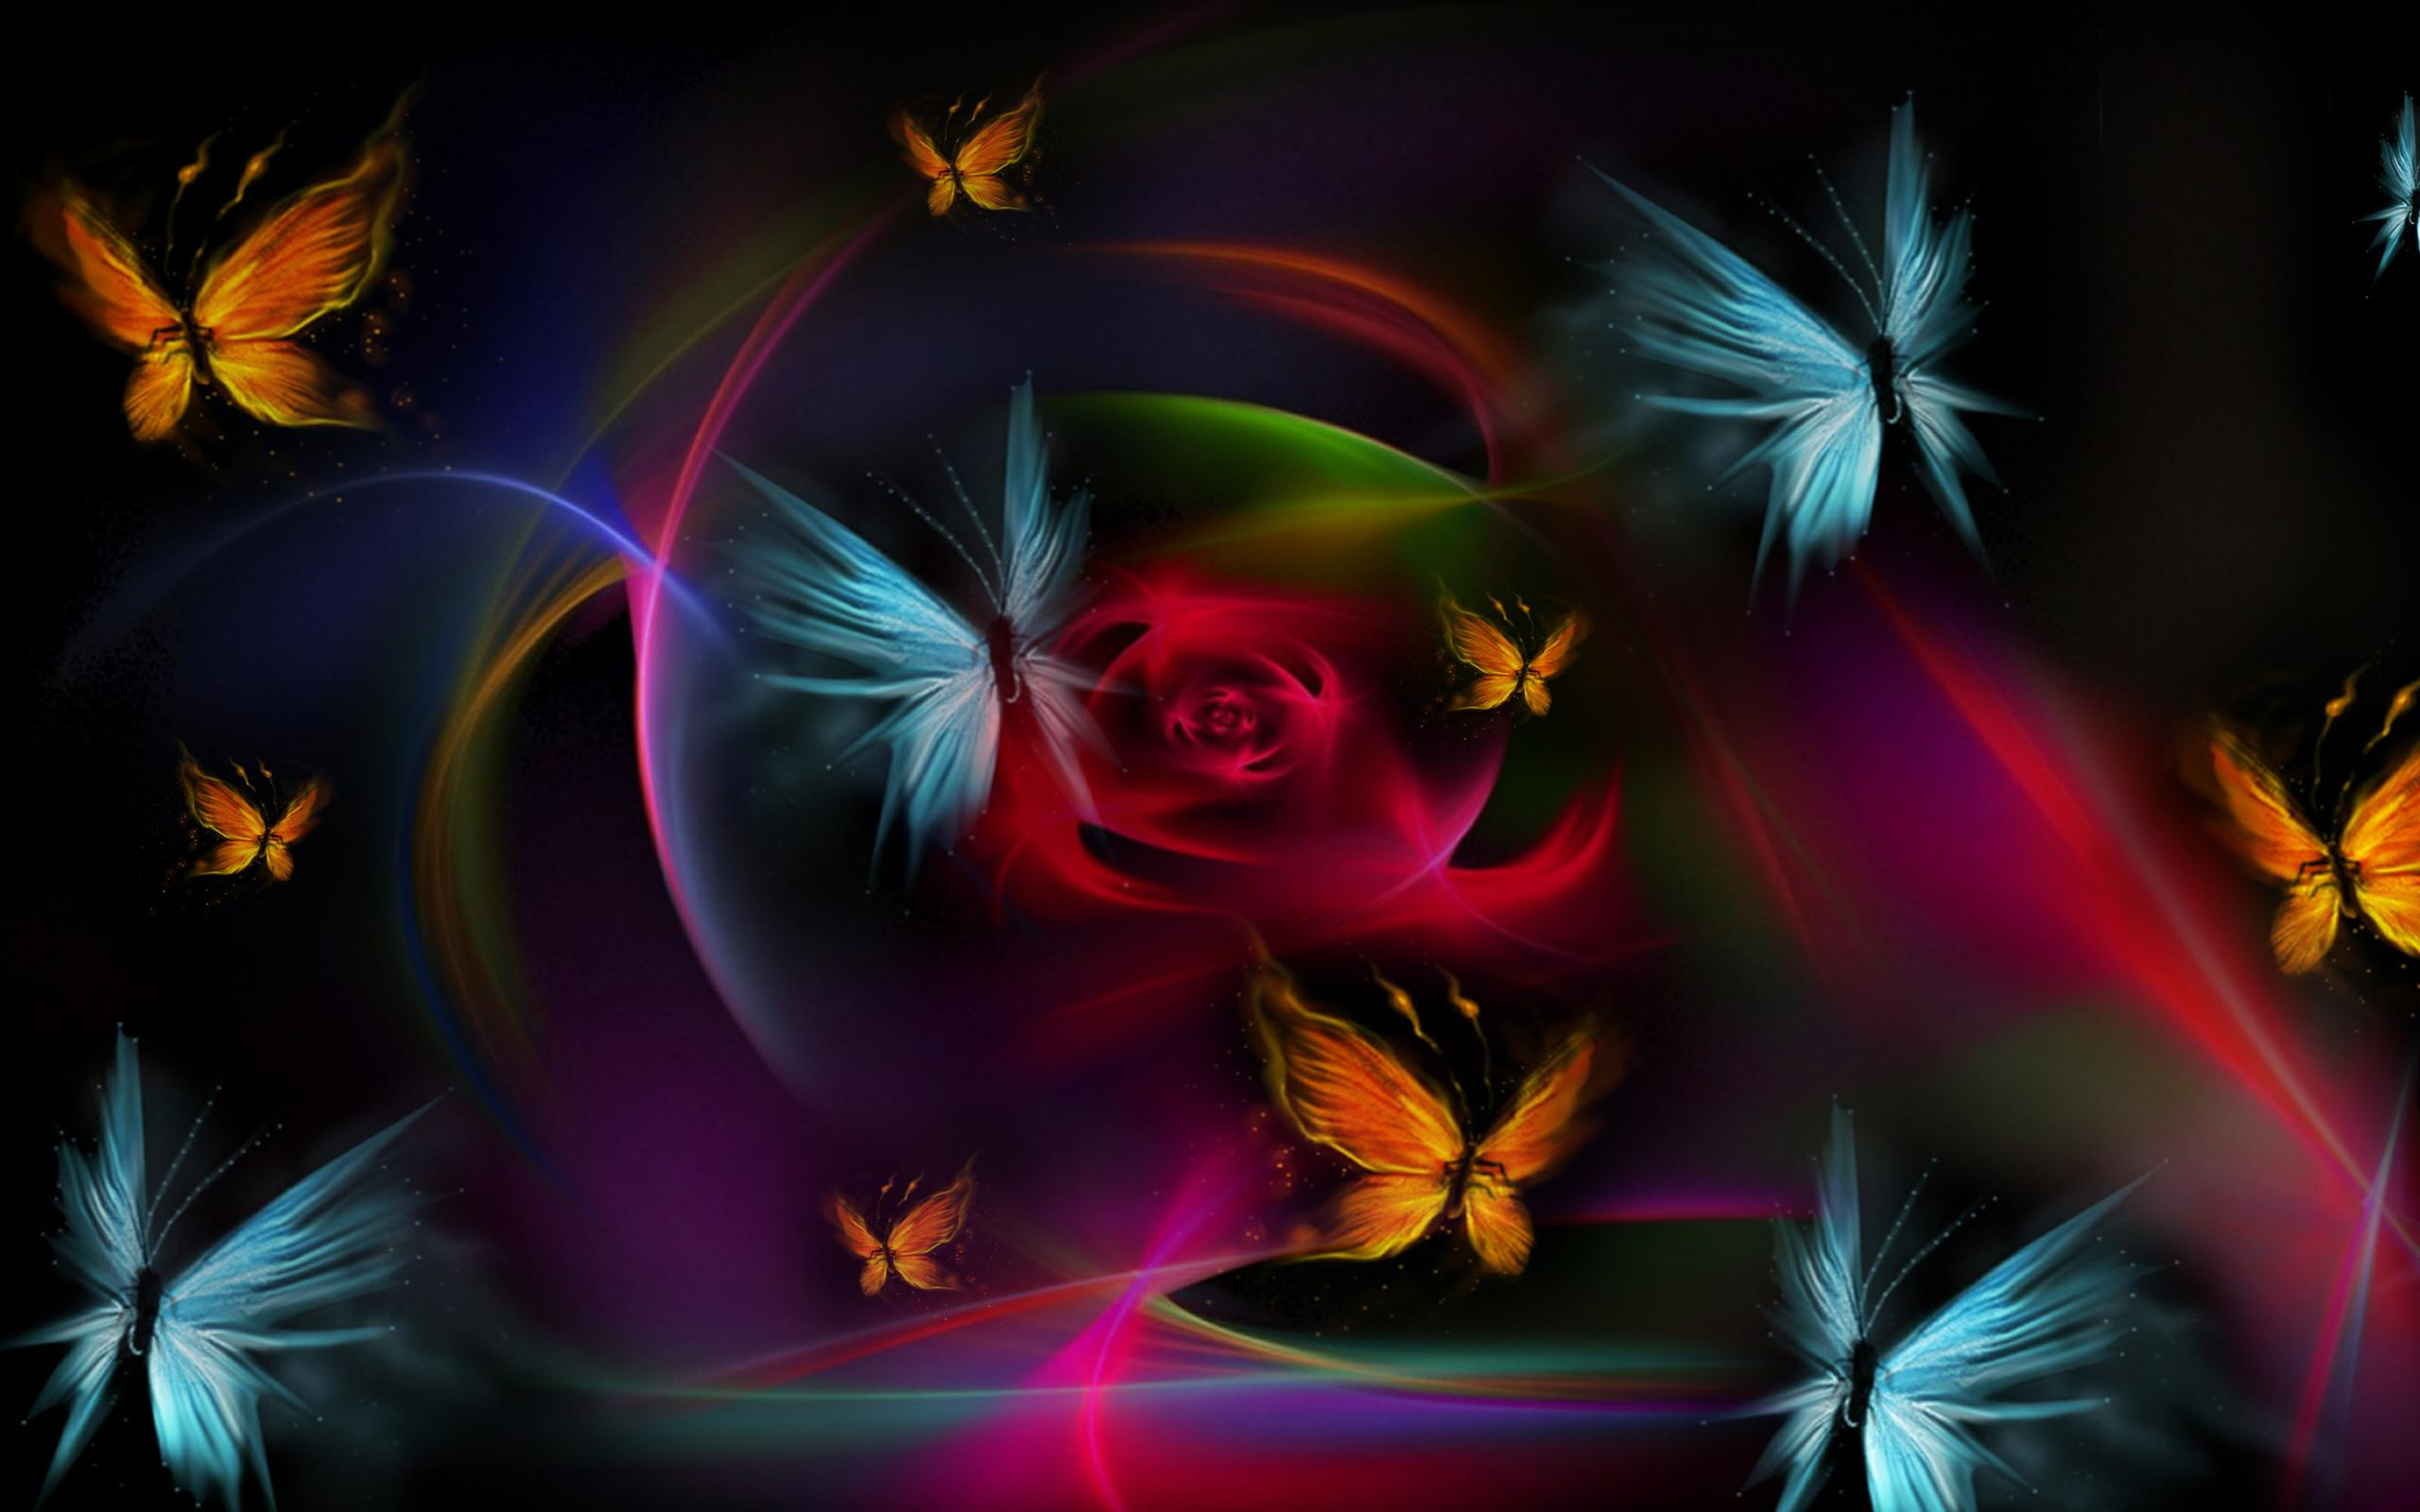 butterfly hd images 1080p